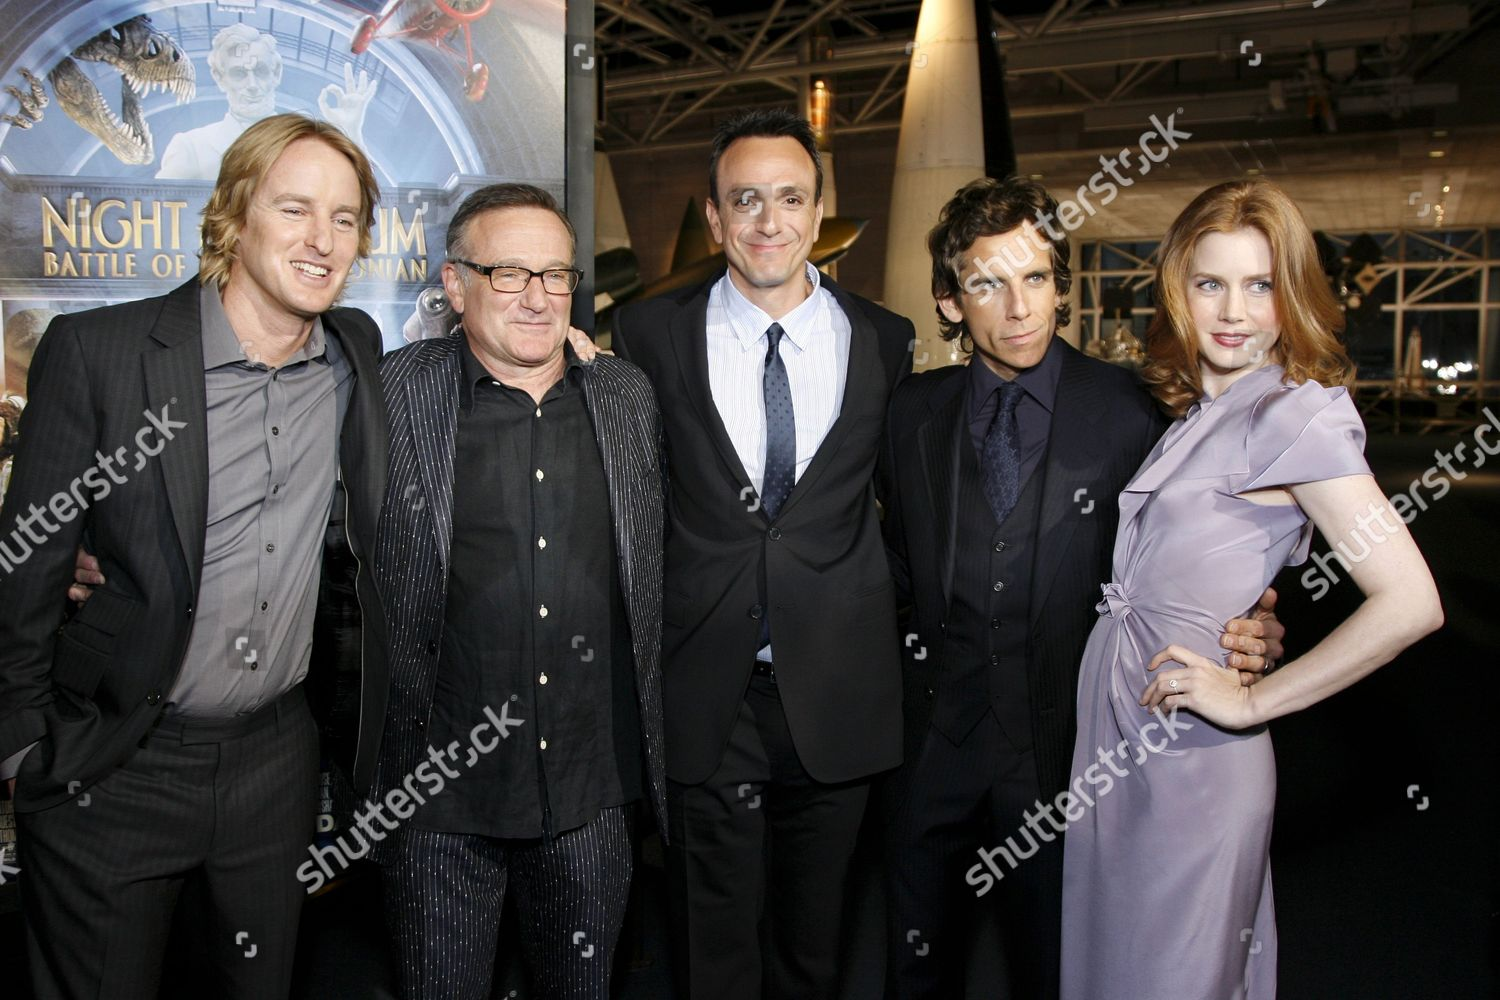 'Night at the Museum Battle of the Smithsonian' film premiere, Washington DC, America - 14 May 2009: стоковое фото